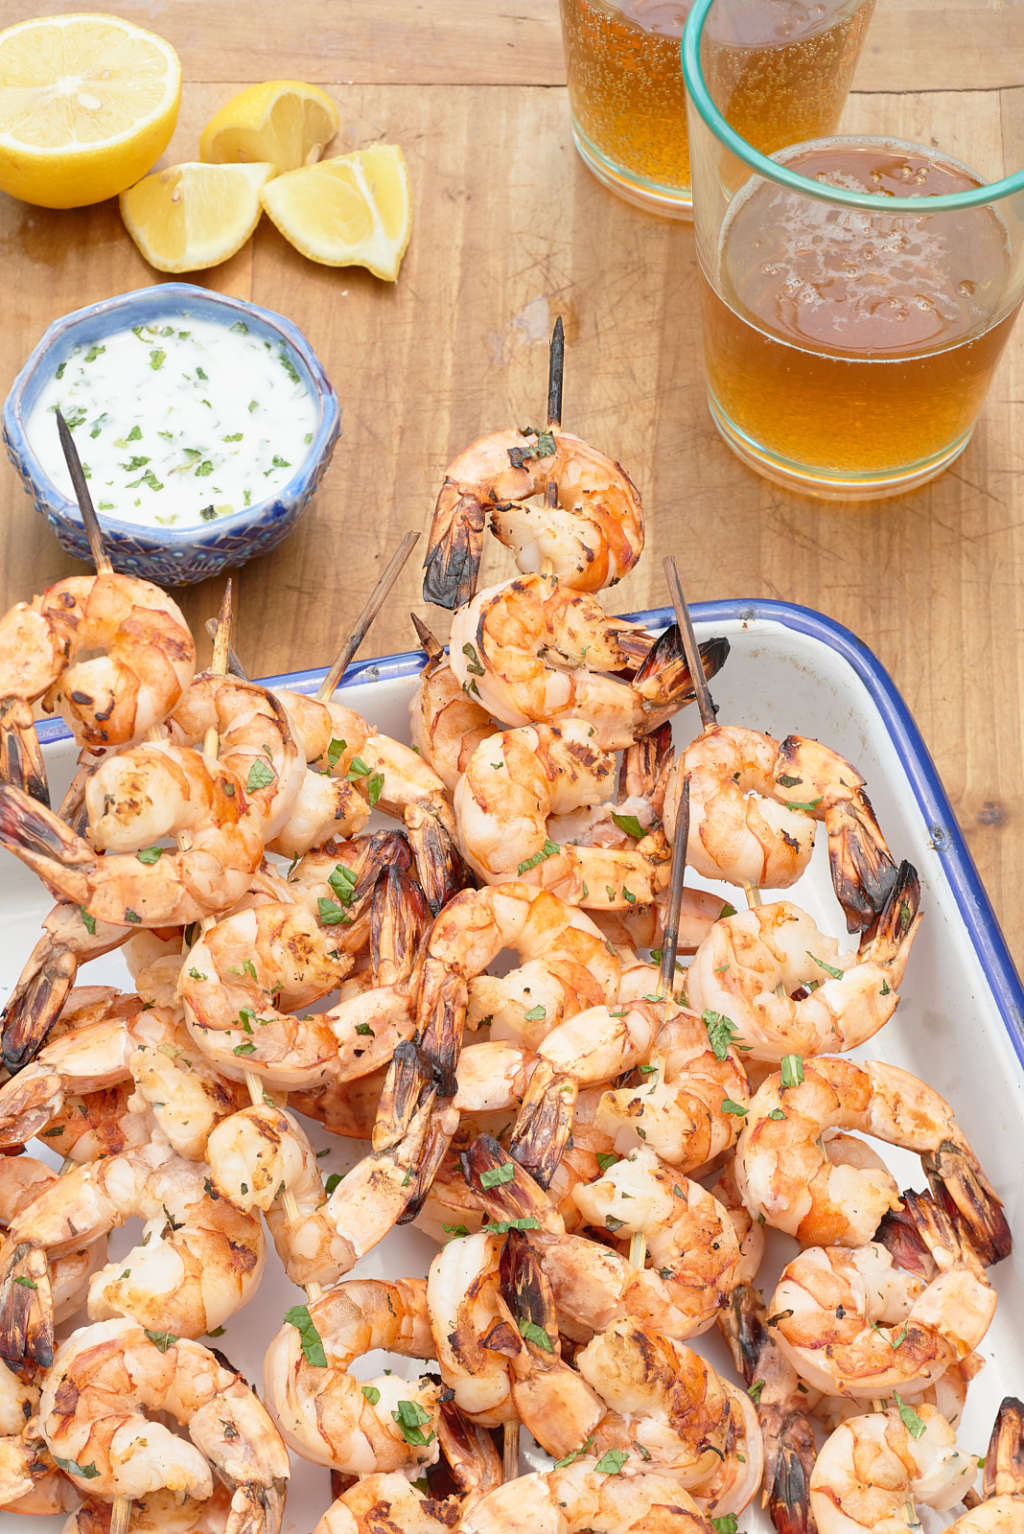 Can You Guess the Trick to Making the Best Grilled Shrimp?